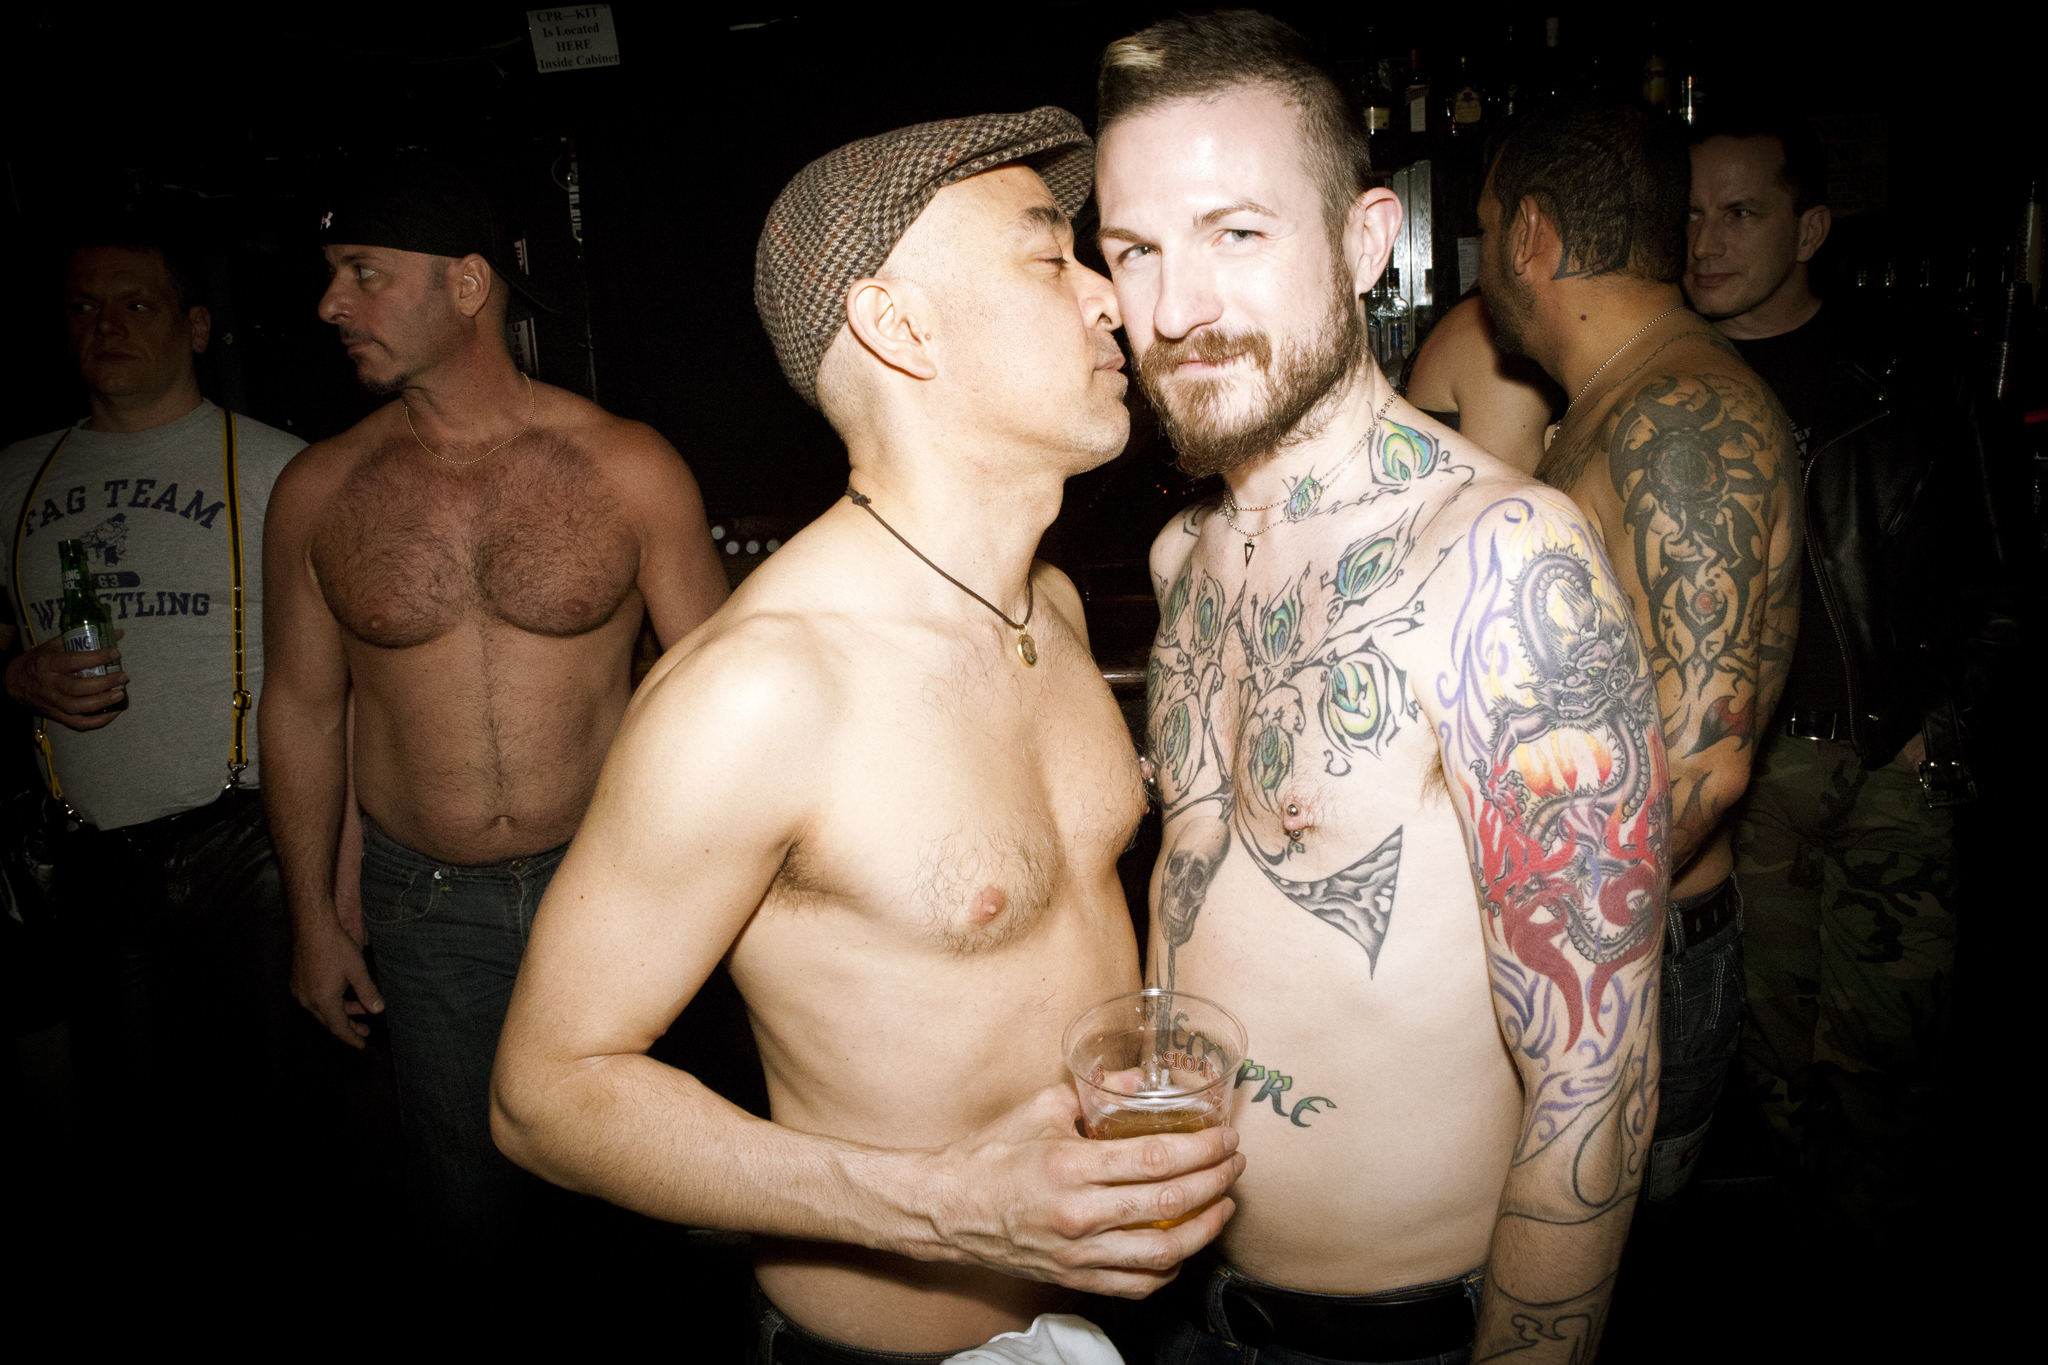 Remarkable, rather gay strip clubs in manhattan